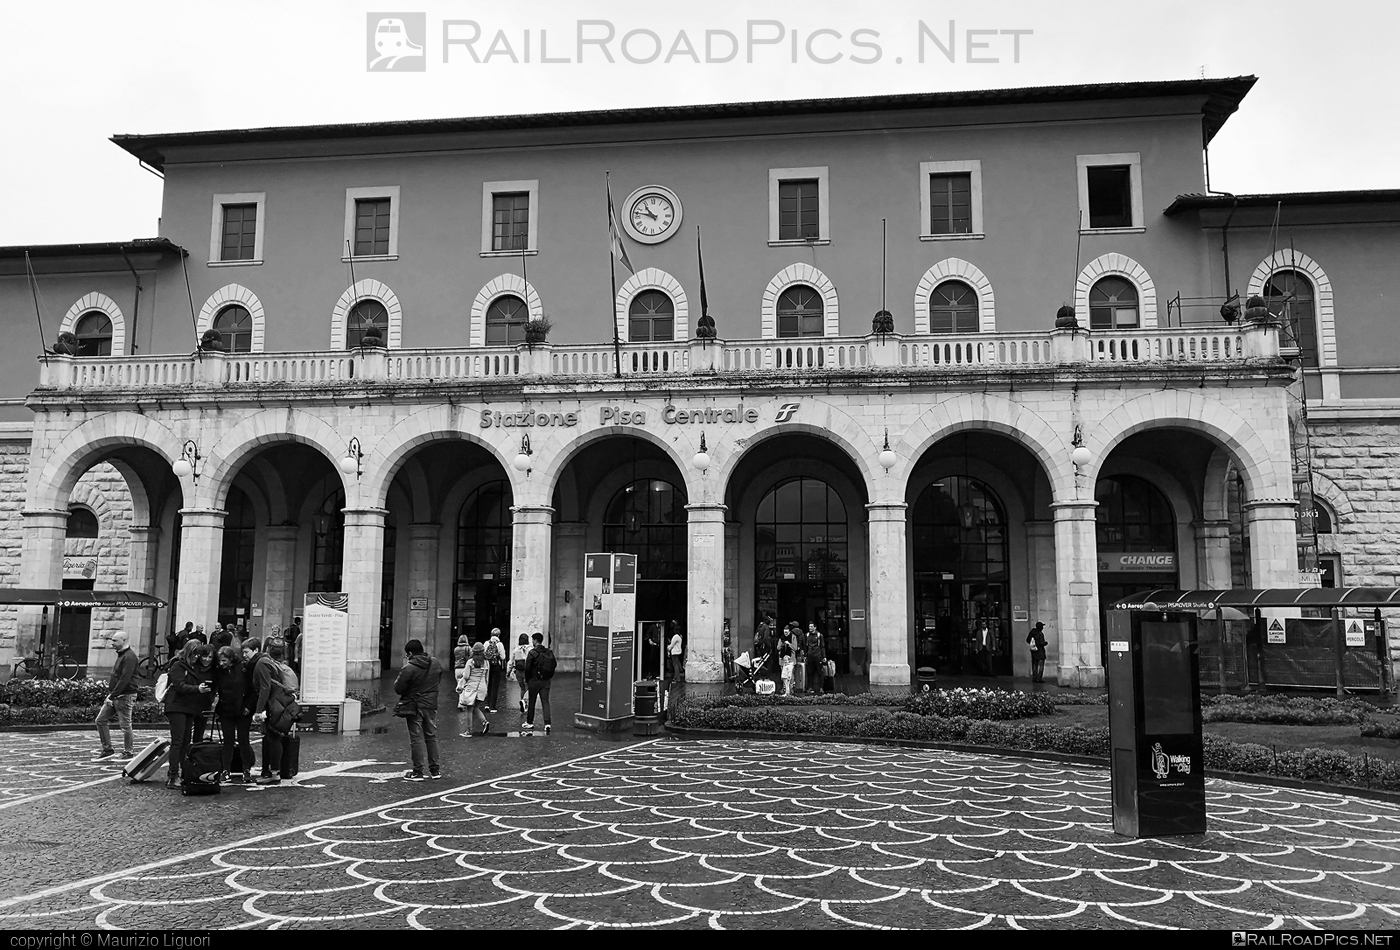 Pisa Centrale location overview #ferroviedellostato #fs #fsitaliane #pisacentrale #pisacentralestation